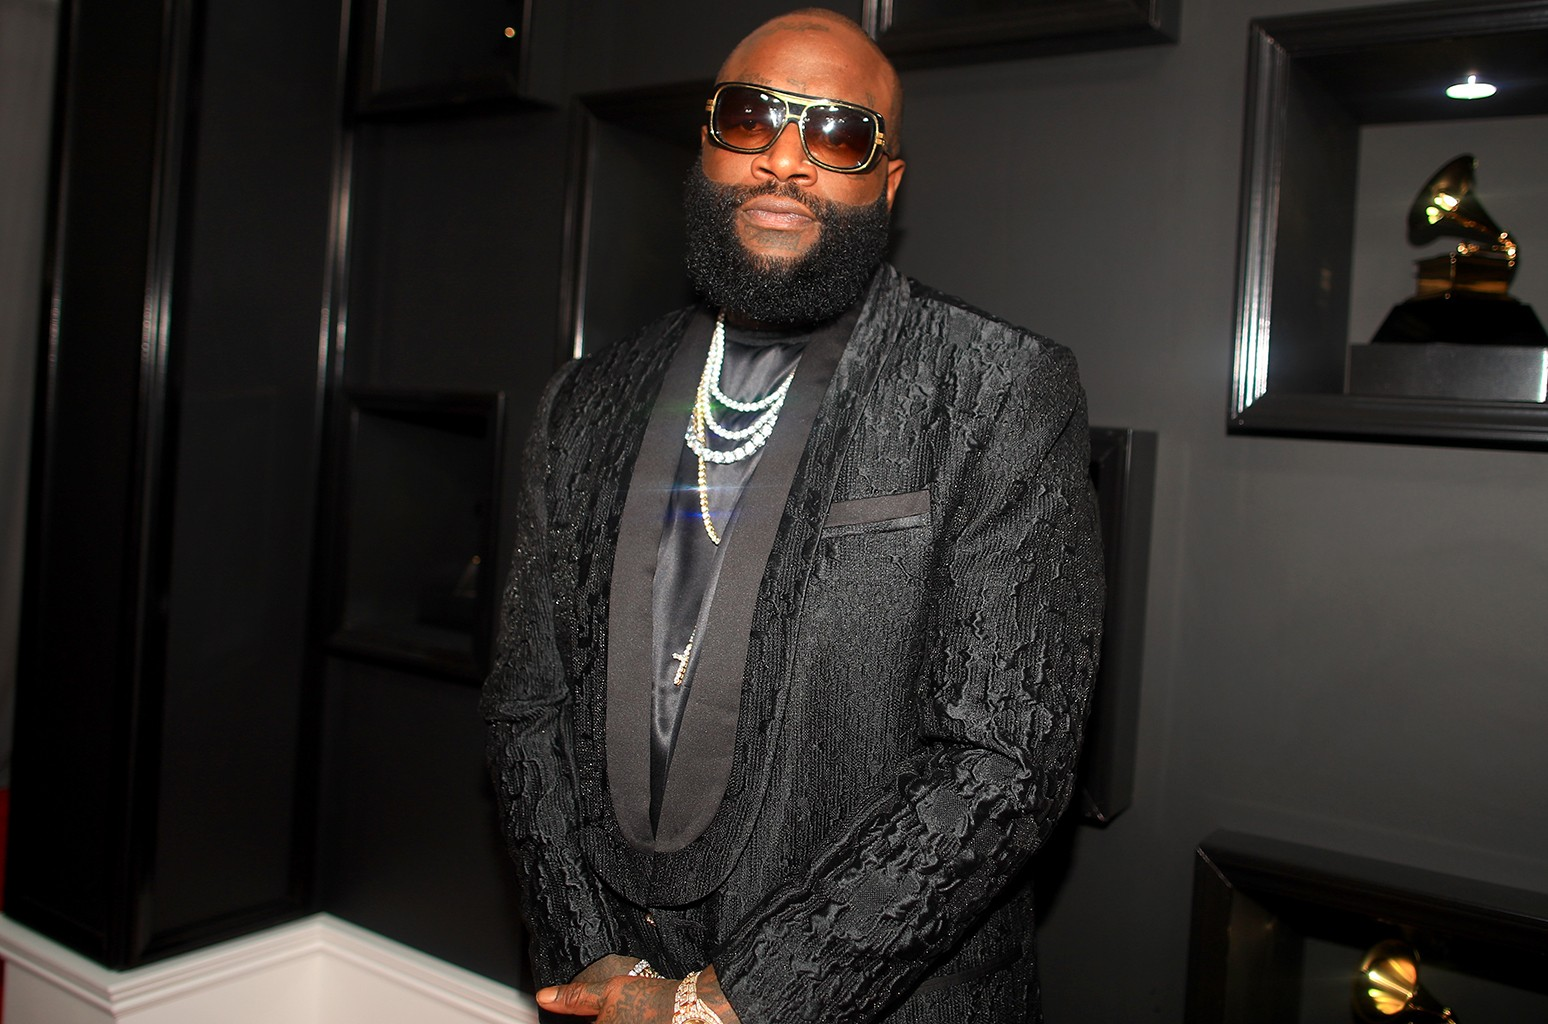 Rick Ross attends The 59th Grammy Awards at Staples Center on Feb. 12, 2017 in Los Angeles.